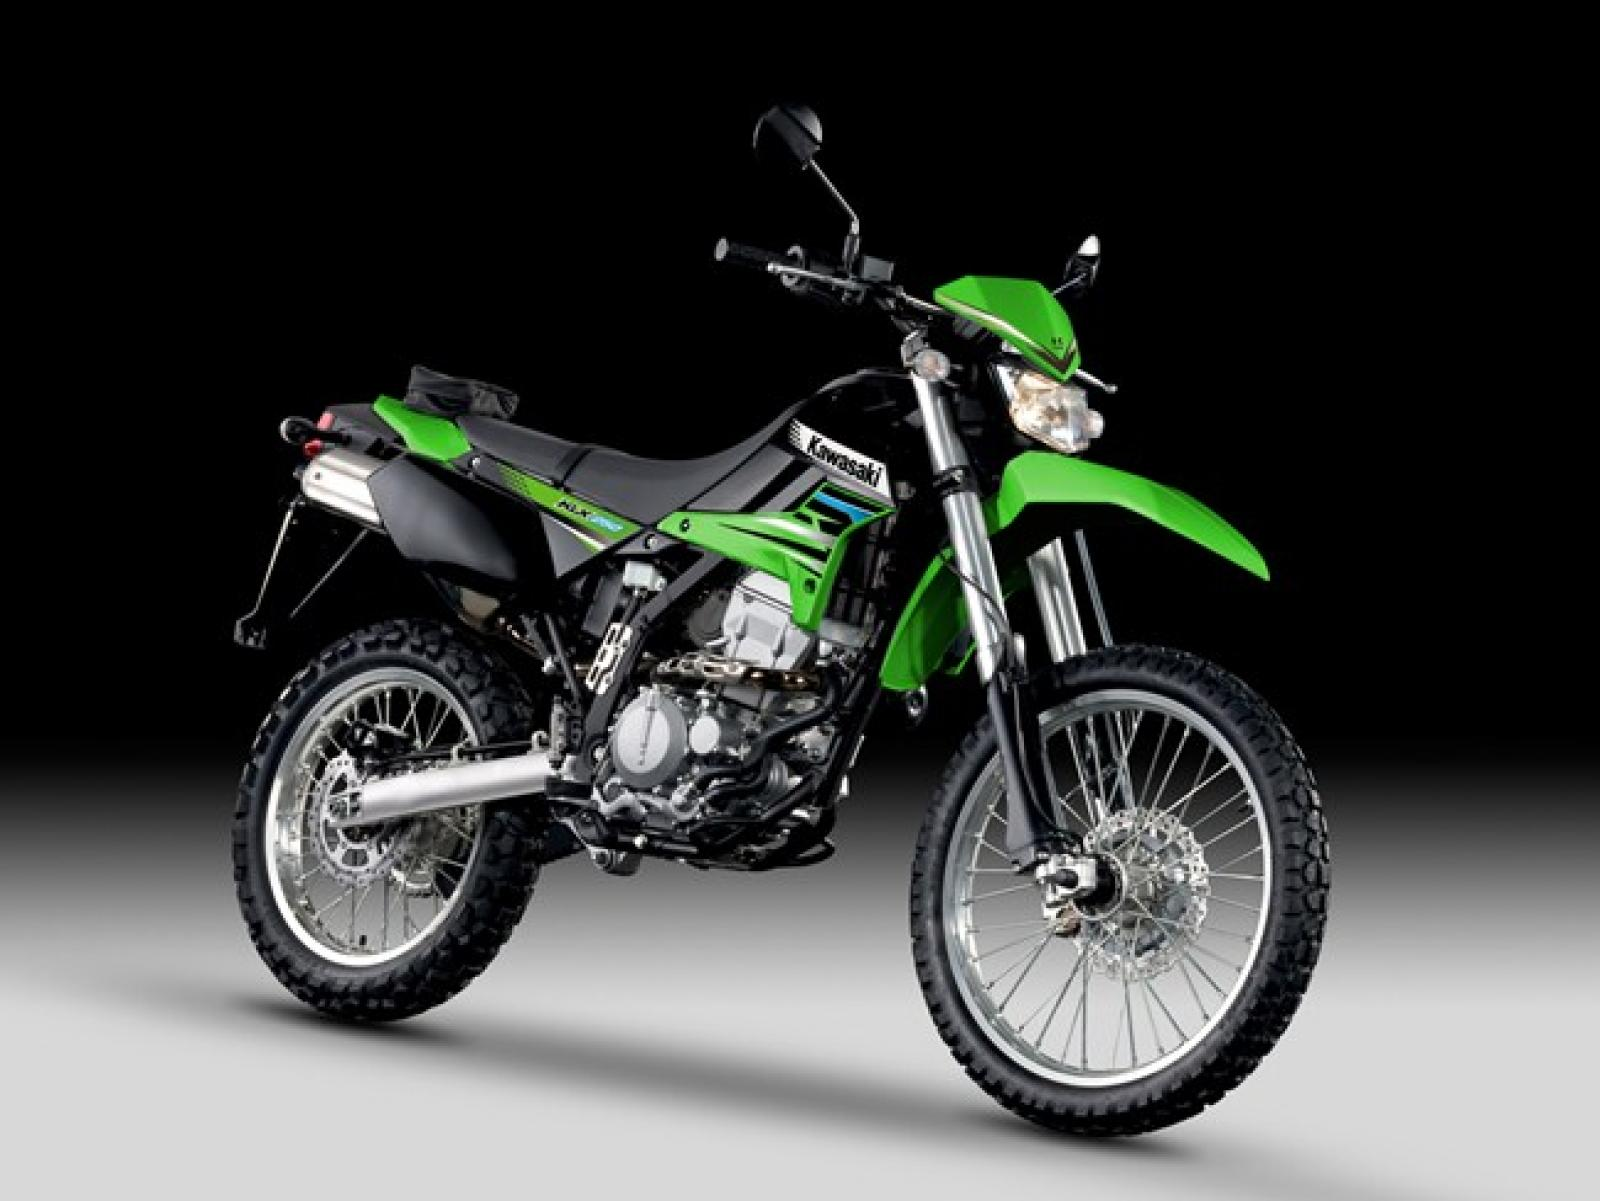 2012 kawasaki klx250s moto zombdrive com. Black Bedroom Furniture Sets. Home Design Ideas